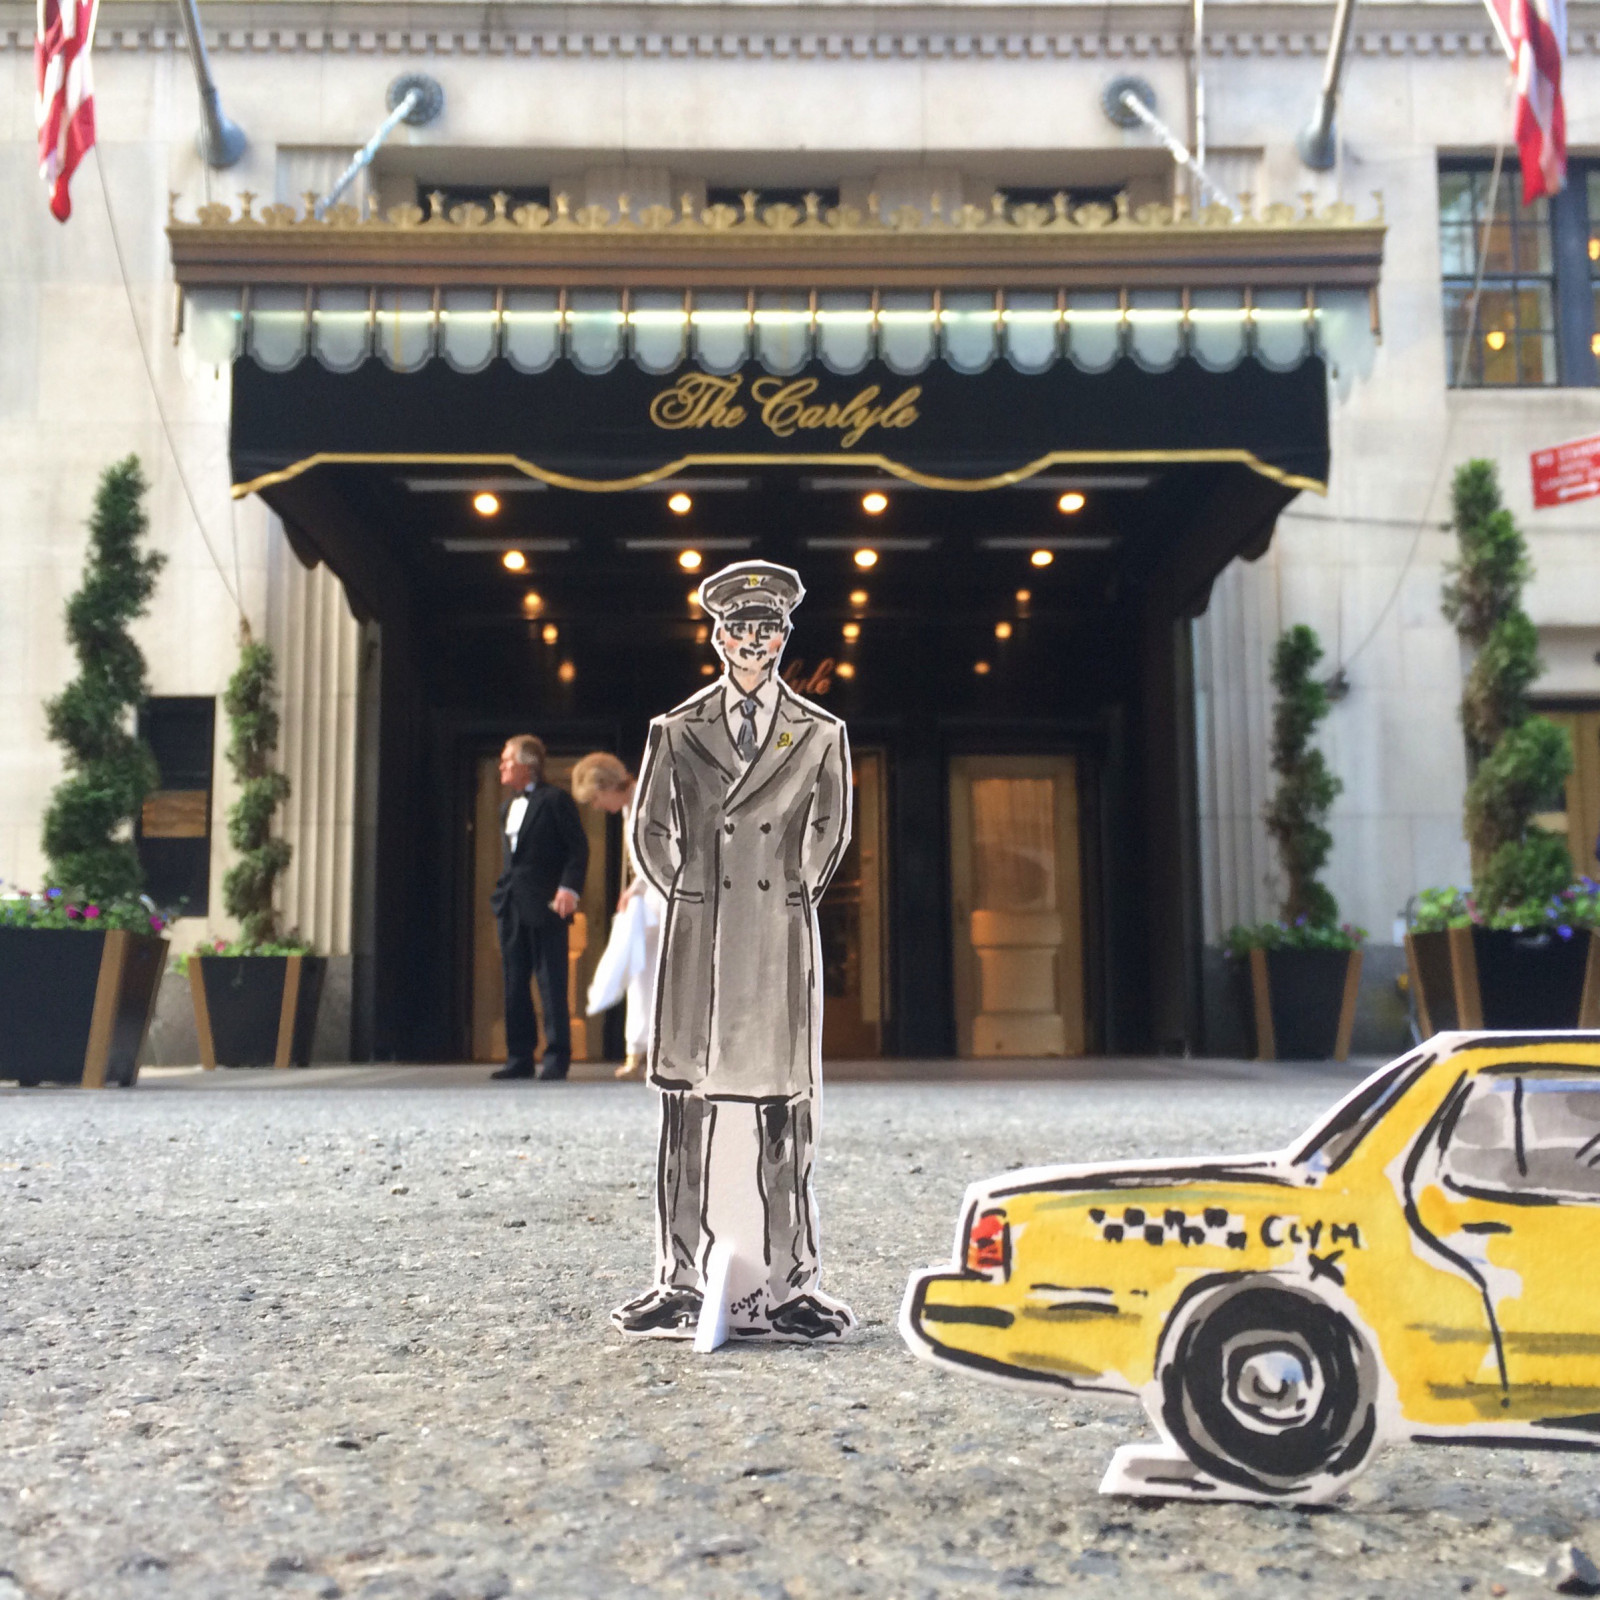 THE CARLYLE DOORMAN